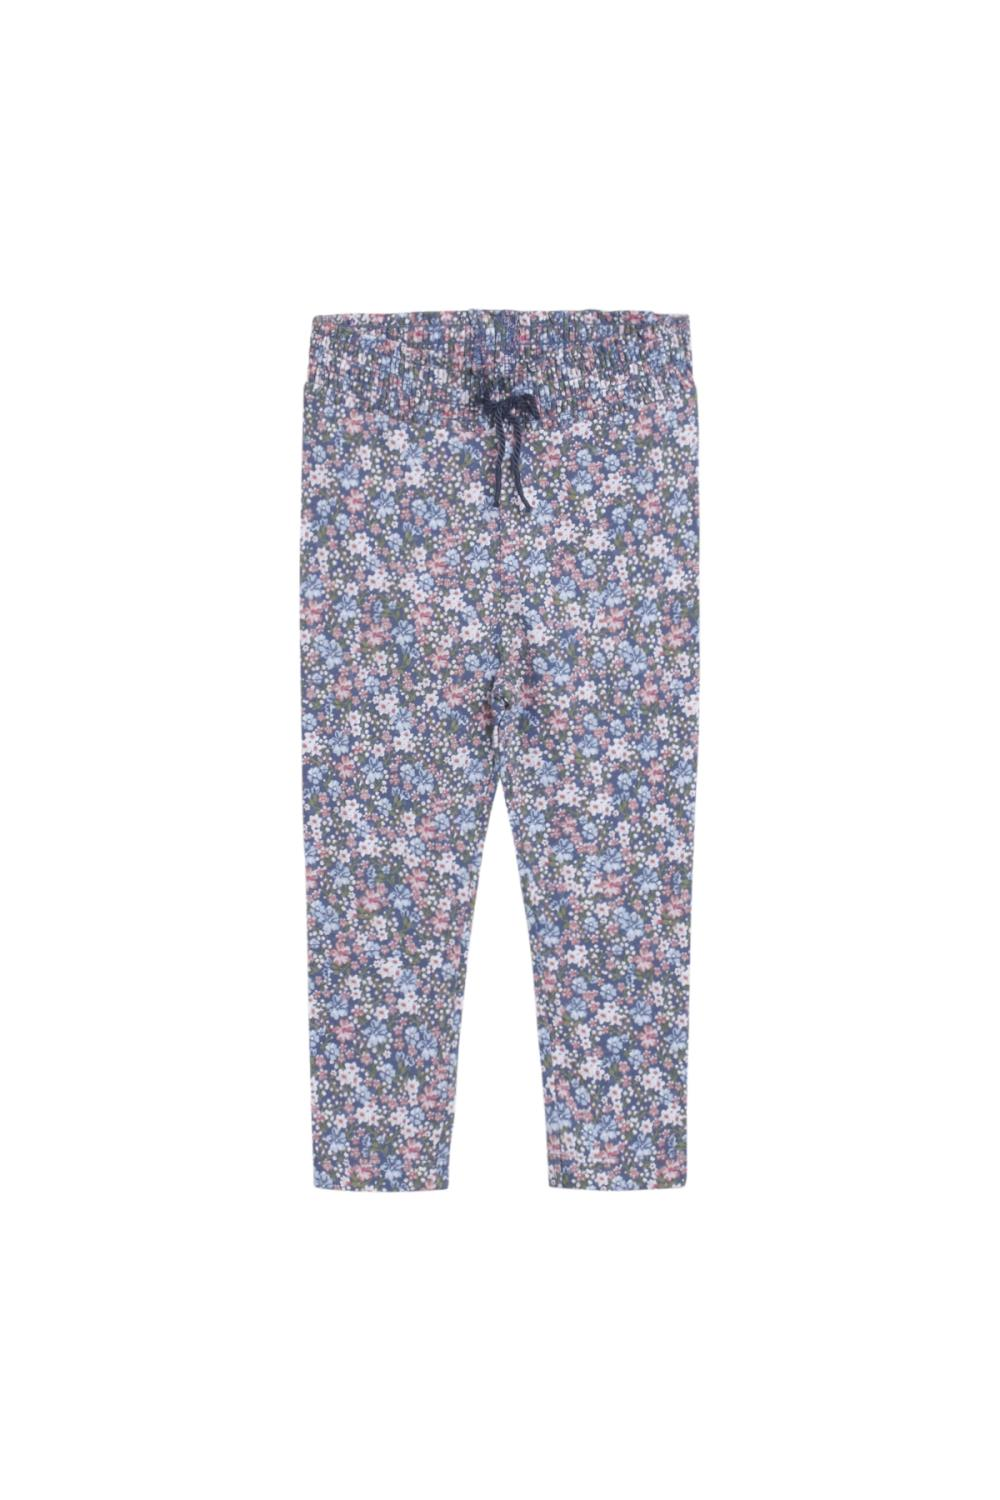 Hust and Claire  - Leggings Leandra med blomster, peony blue